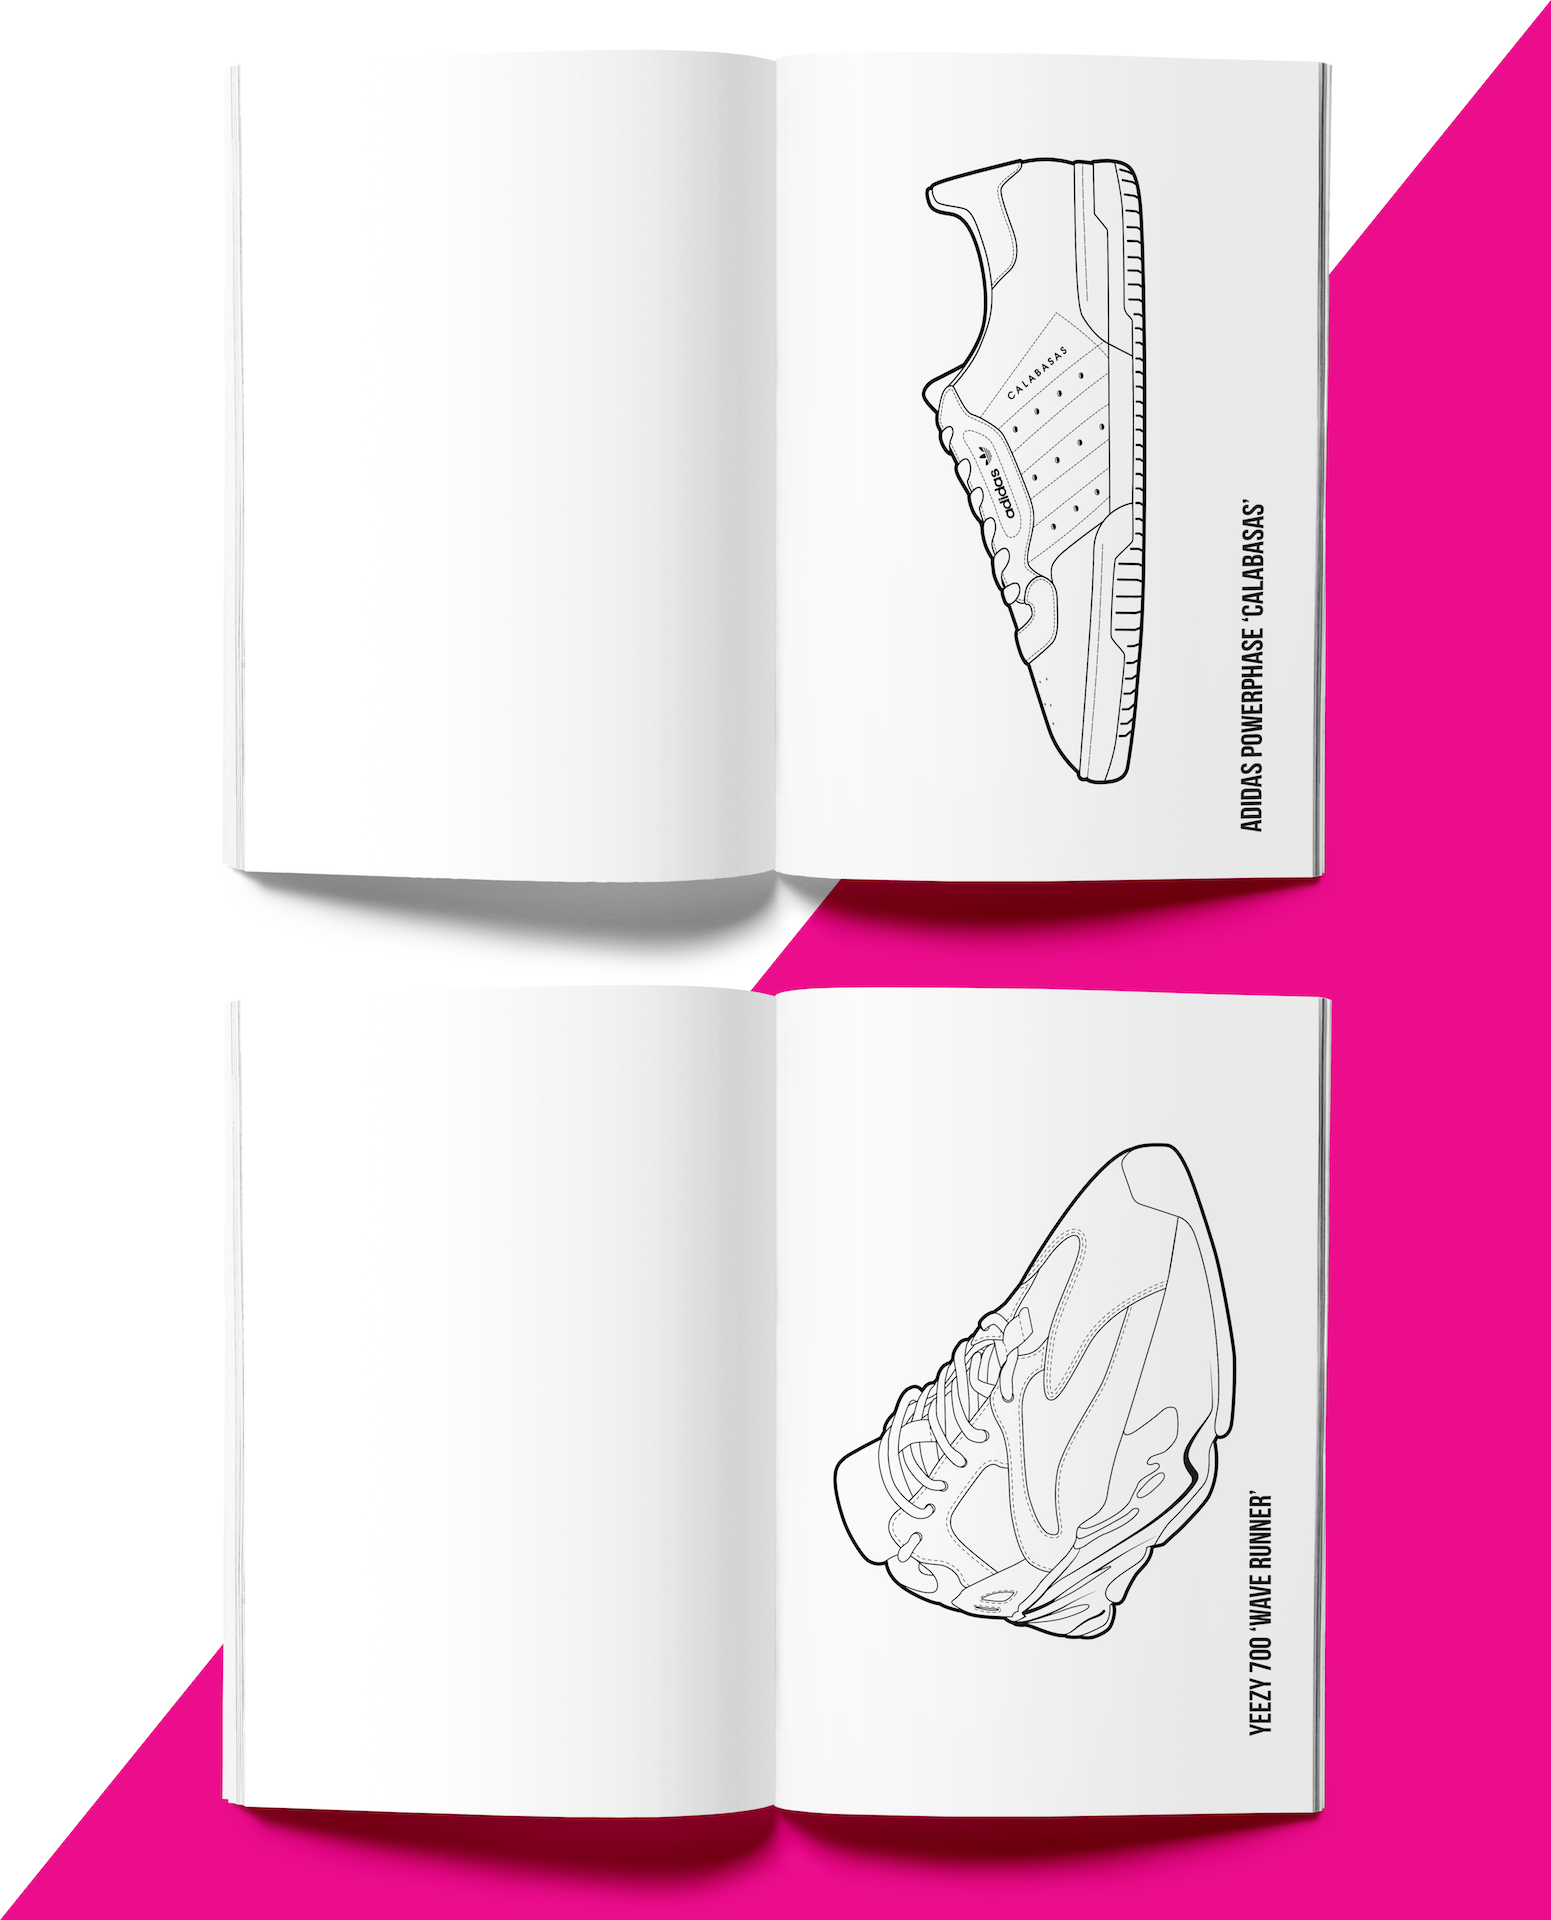 Hyprints Sneaker Coloring Book